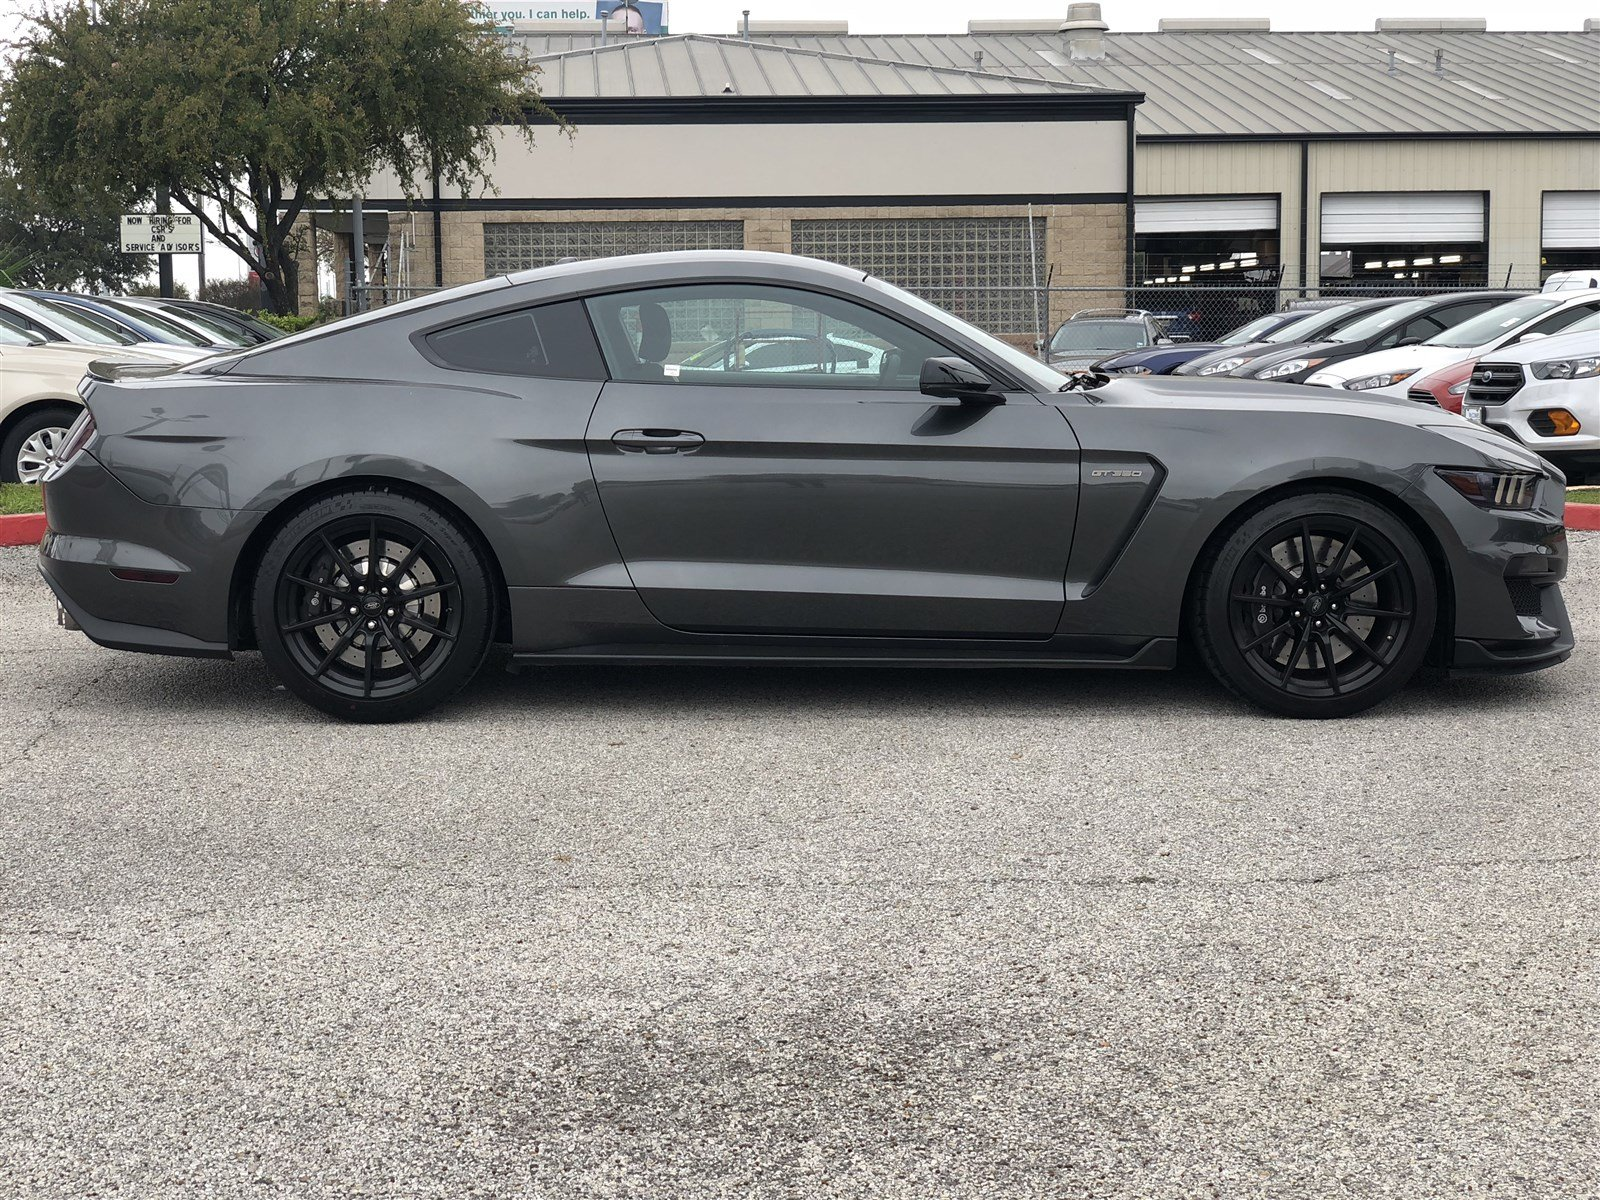 Pre Owned 2016 Ford Mustang Shelby GT350 Coupe in San Antonio